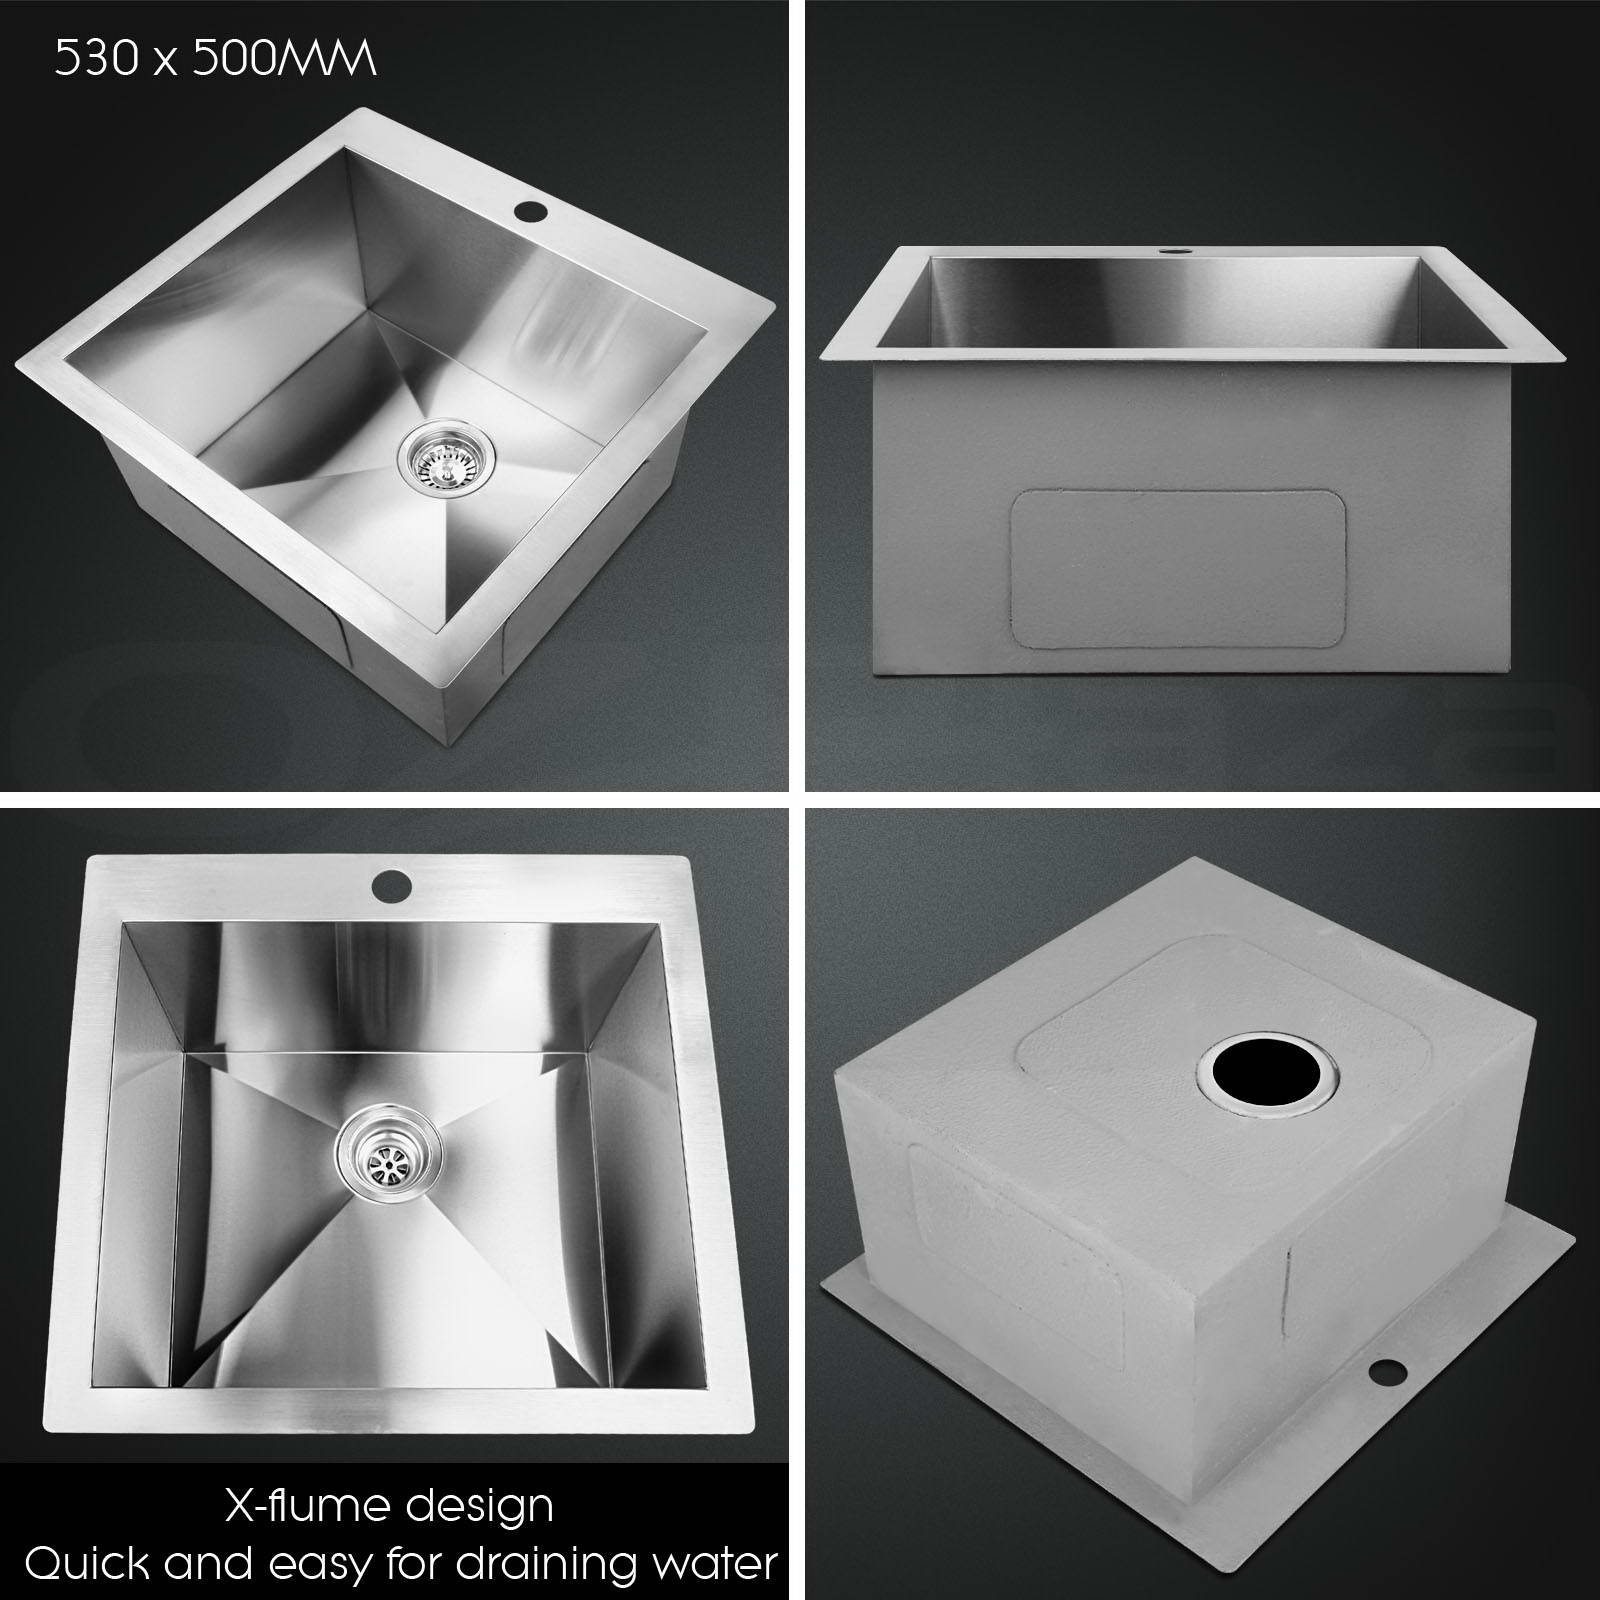 Cefito Stainless Steel Kitchen Sink Under/Topmount Handmade Single Double Bowl